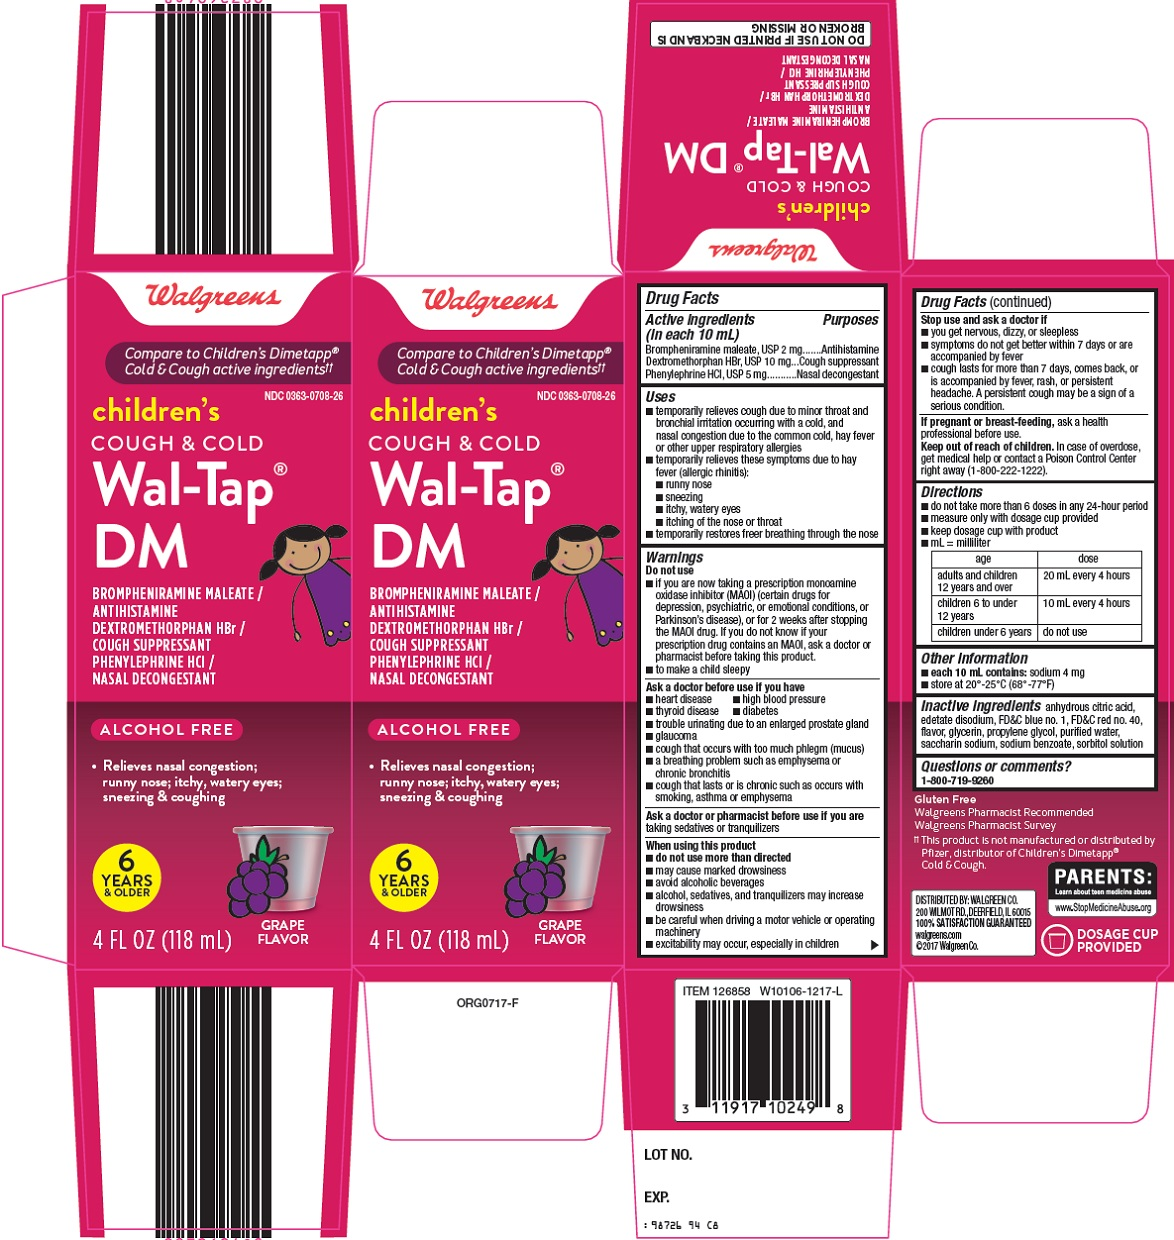 Walgreen Co Children S Wal Tap Dm Cough Cold Drug Facts